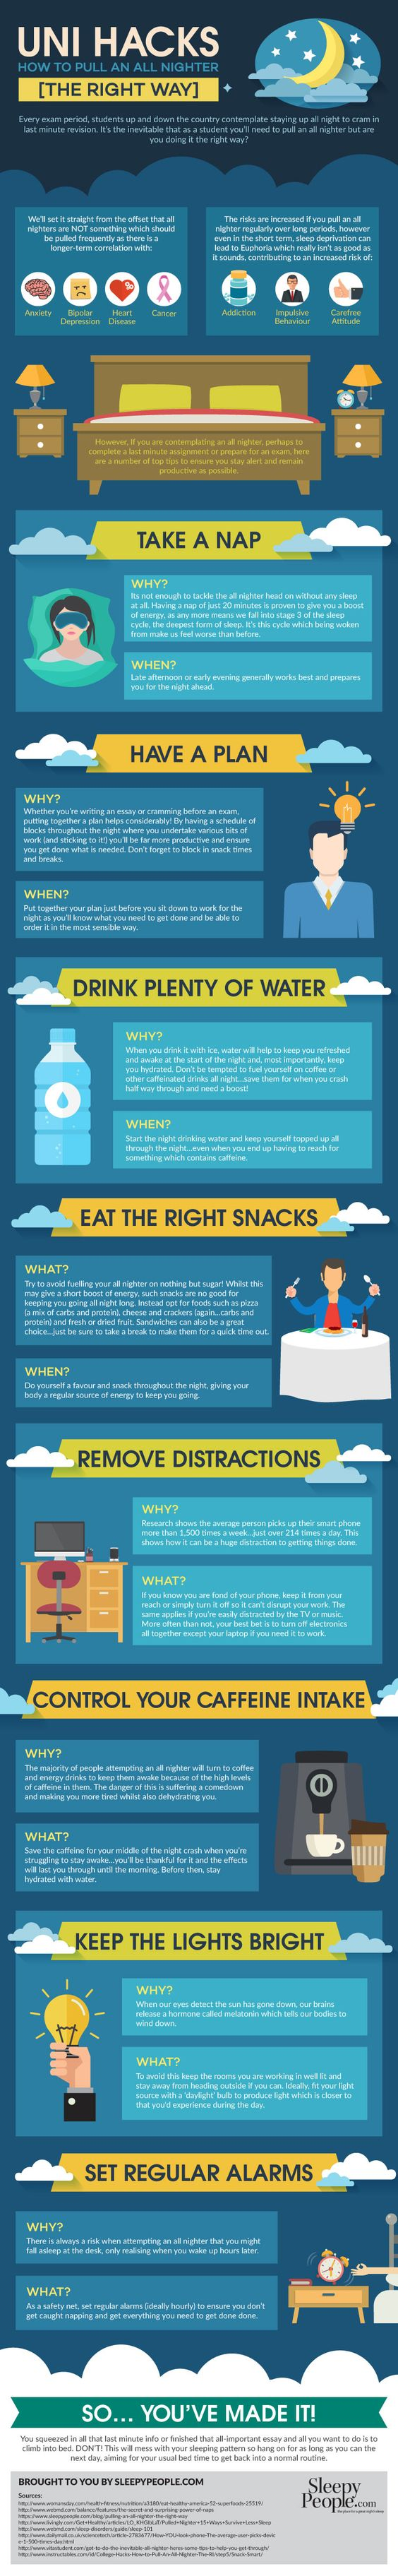 How to Pull an All-Nighter | Synonym